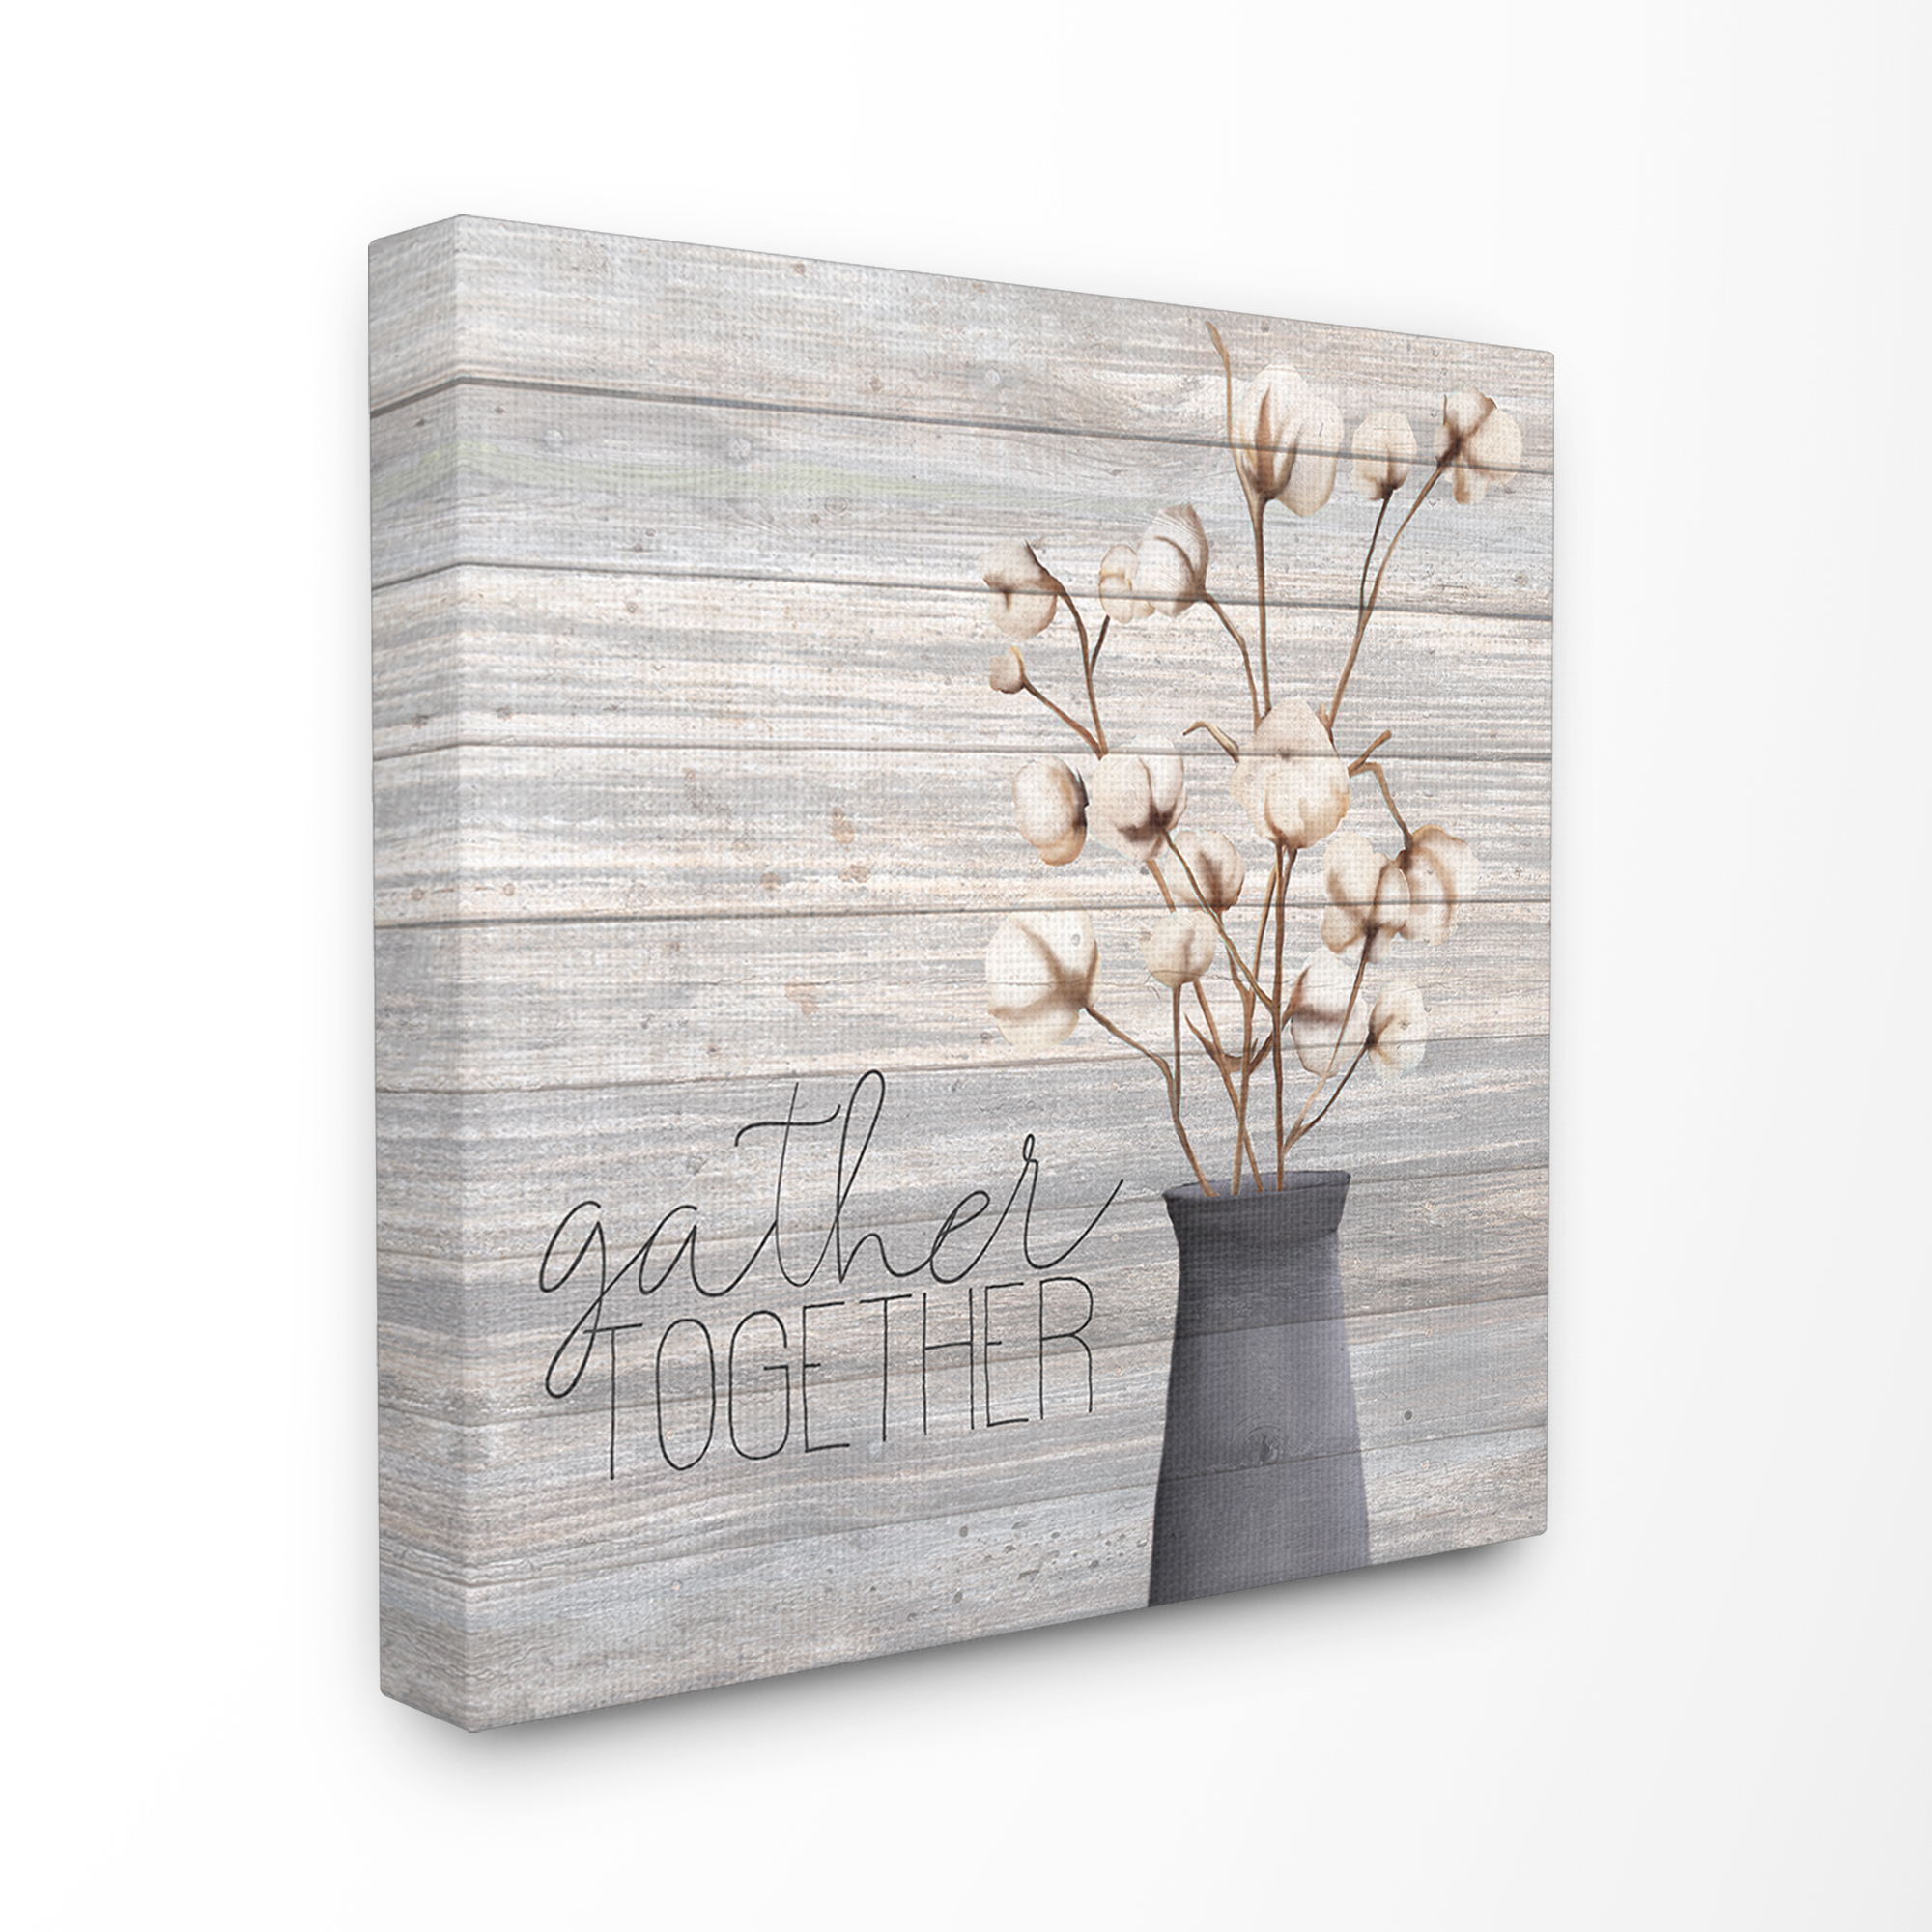 The Stupell Home Decor Grey Gather Together Cotton Flowers in Vase Canvas Wall Art - Walmart.com ...